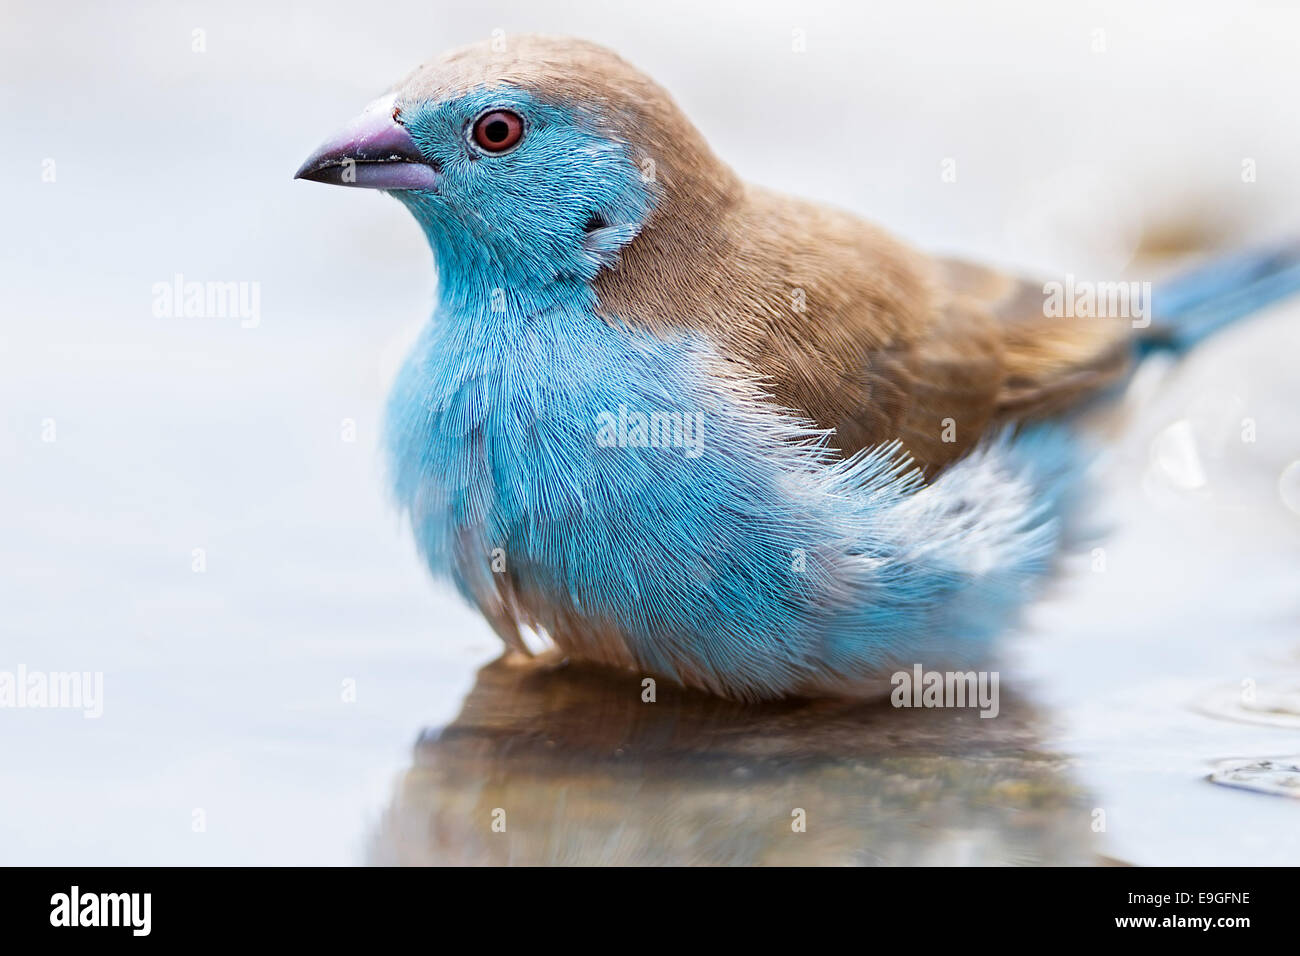 Close-up of a Blue waxbill (Uraeginthus angolensis), also called Blue-breasted cordon-bleu, bathing in water. Botswana - Stock Image